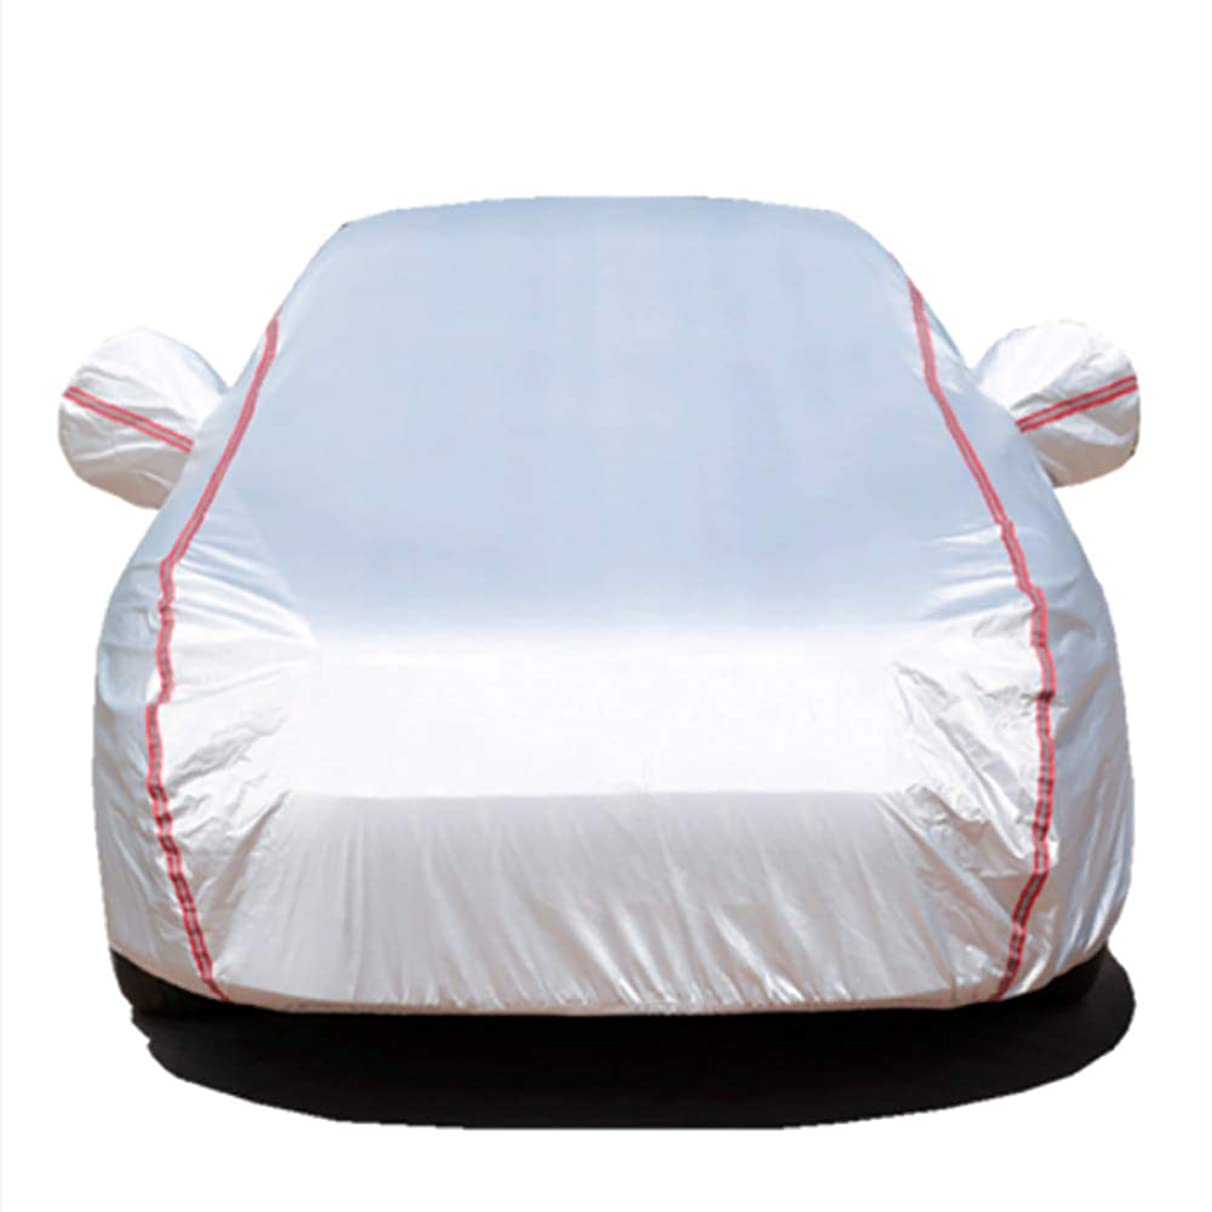 LIDAUTO Car Covers Auto Full Cover Snow Ice Dust Sun UV Shade Light Size Outdoor Protector Size 3M-3L